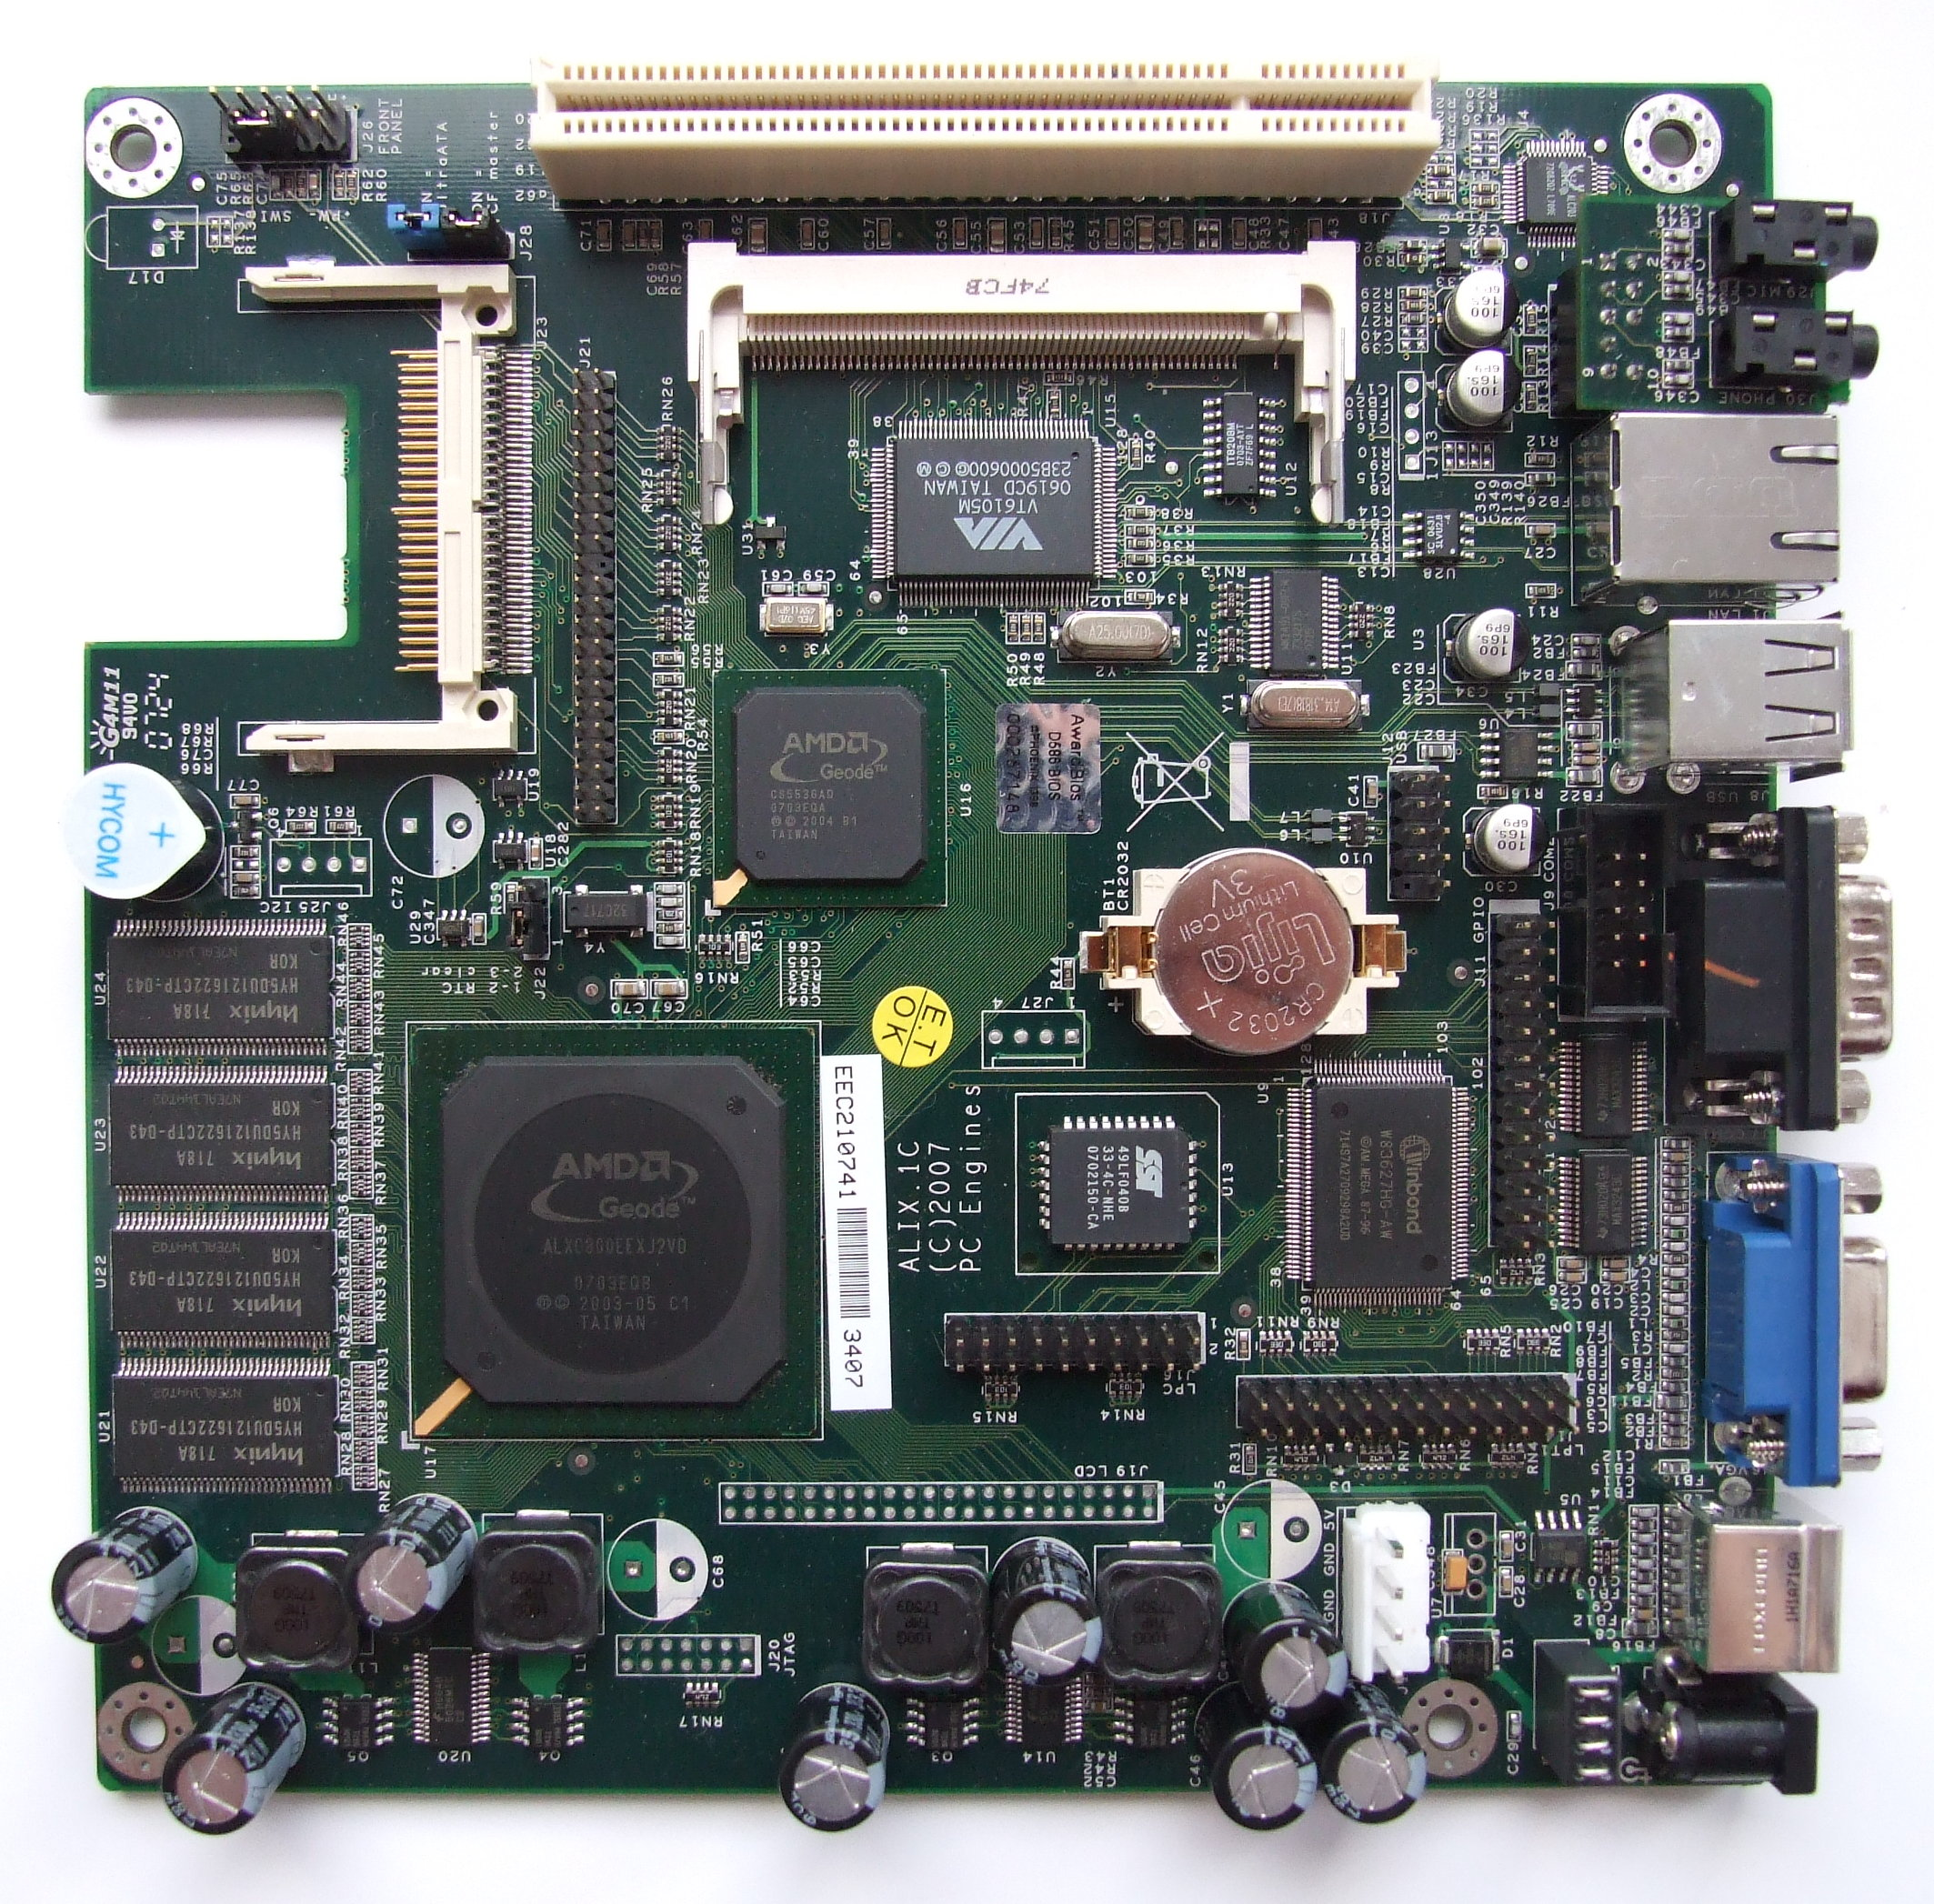 Alix.1C board with AMD Geode LX 800 (PC Engines)